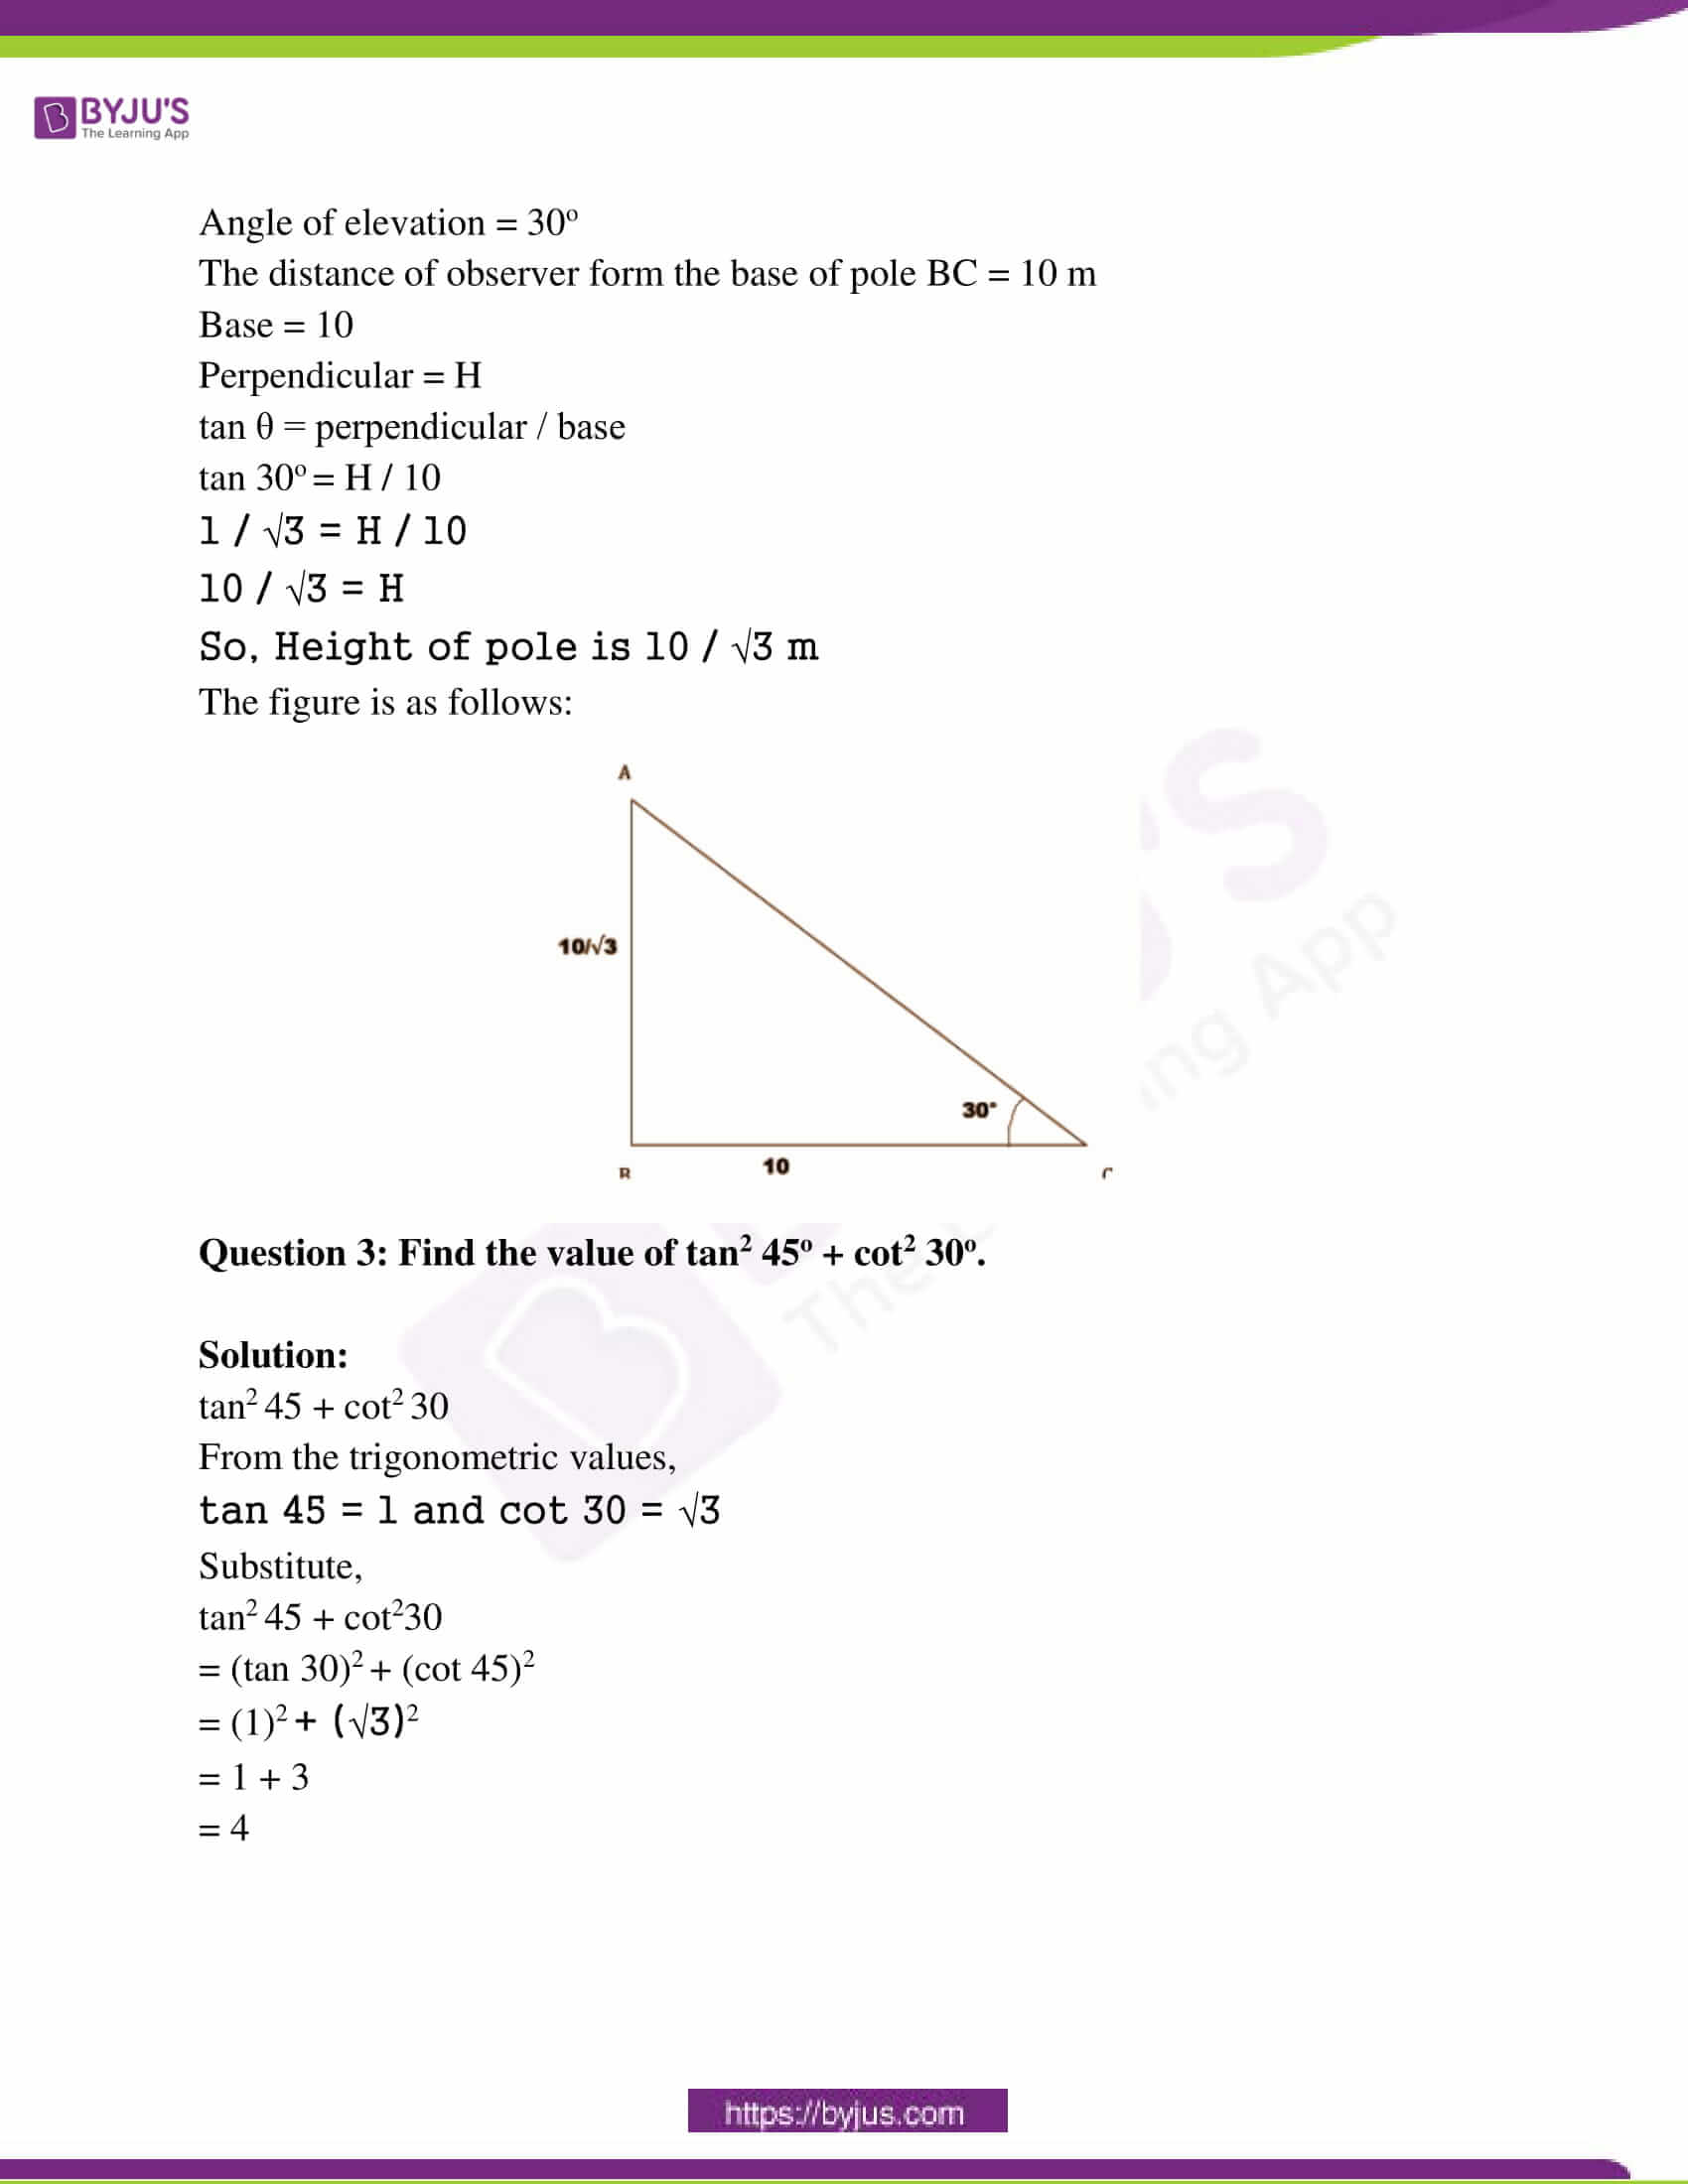 ap class 10 maths question paper 2 sol march 2018 02